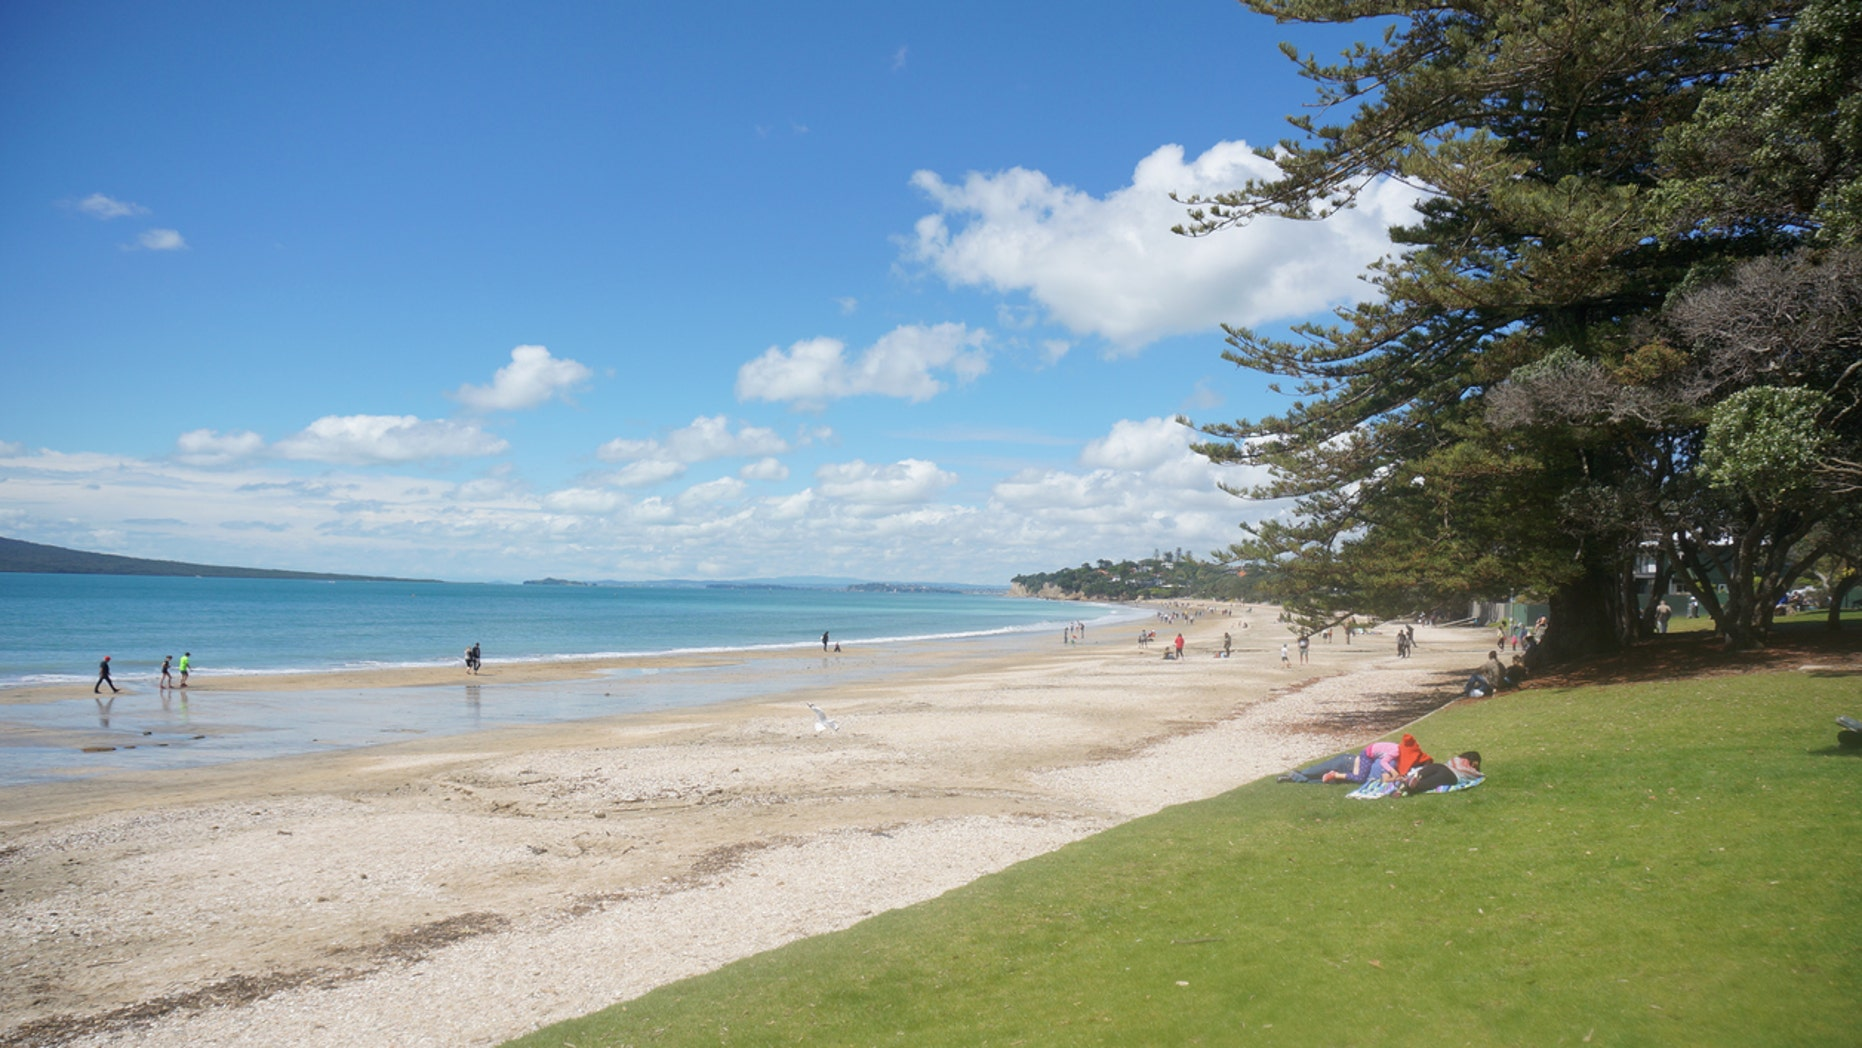 The family of tourists allegedly littered at an Takapuna Beach in Aukland, New Zealand, as well as threatened locals and left a hotel room strewn with garbage and food.